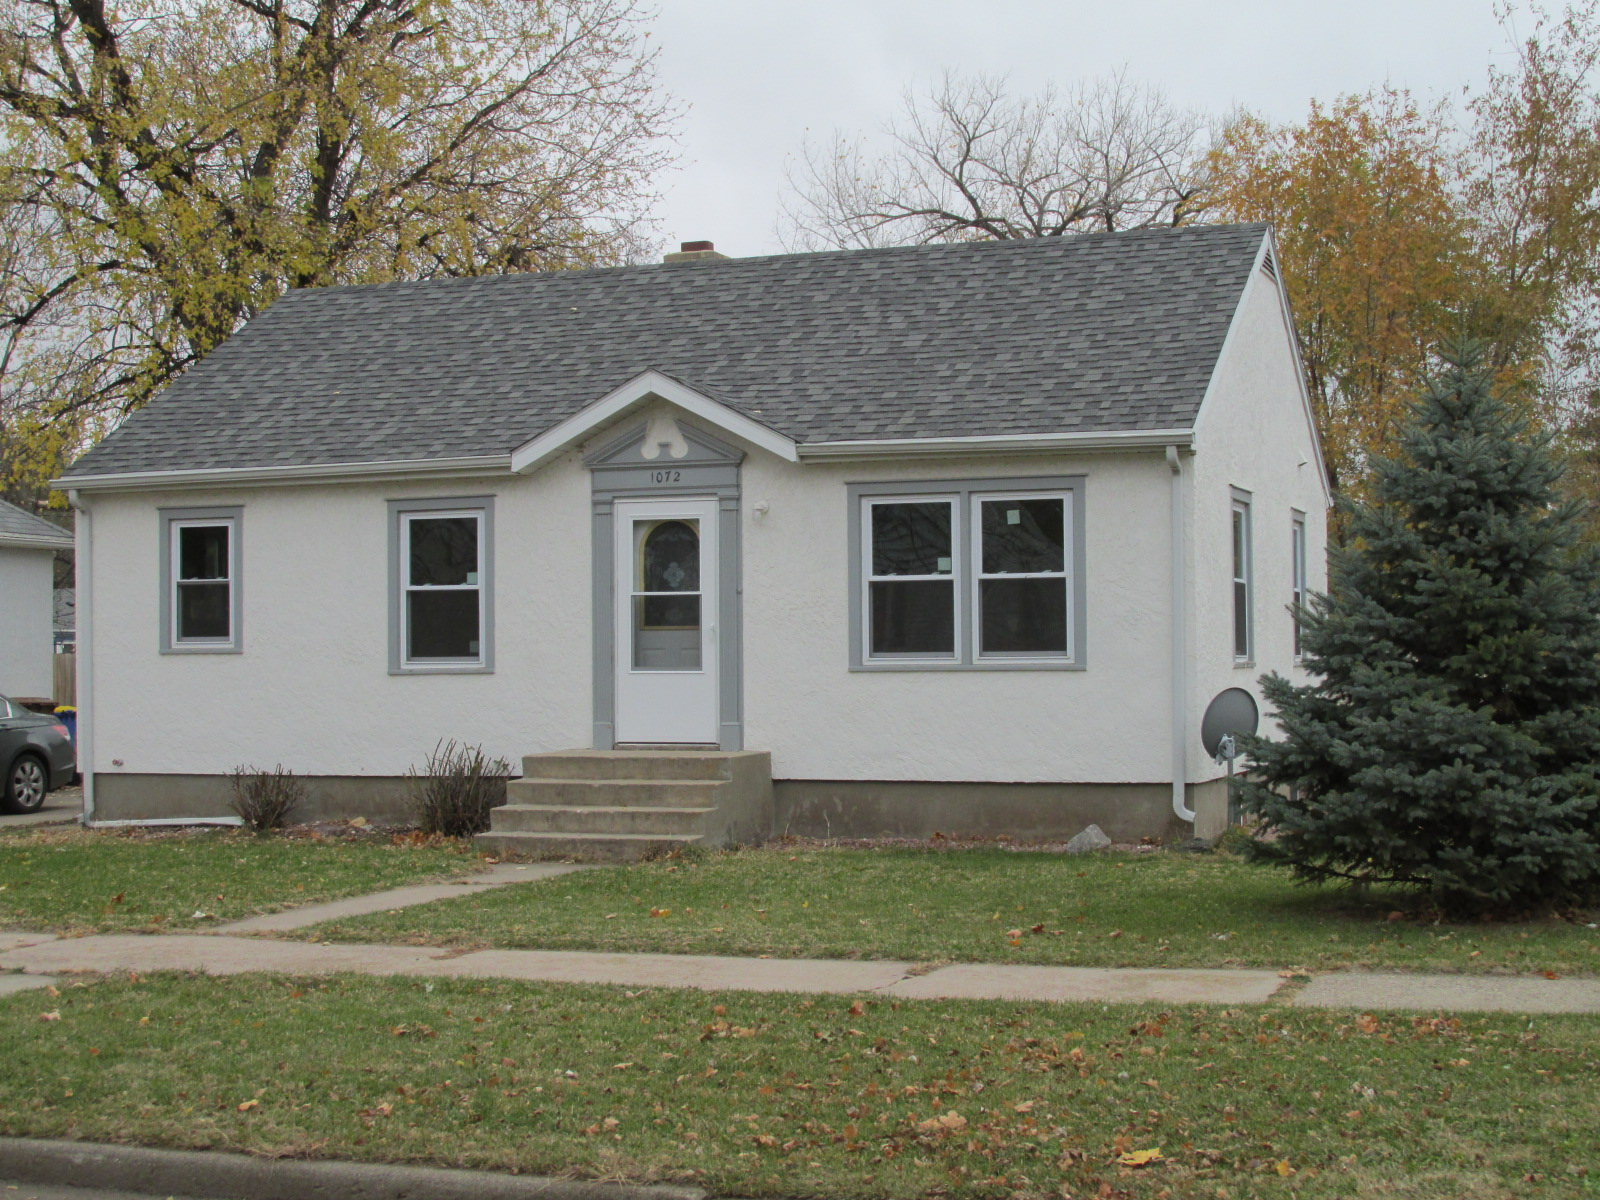 1072 Beach Ave SE, Huron, South Dakota 57350